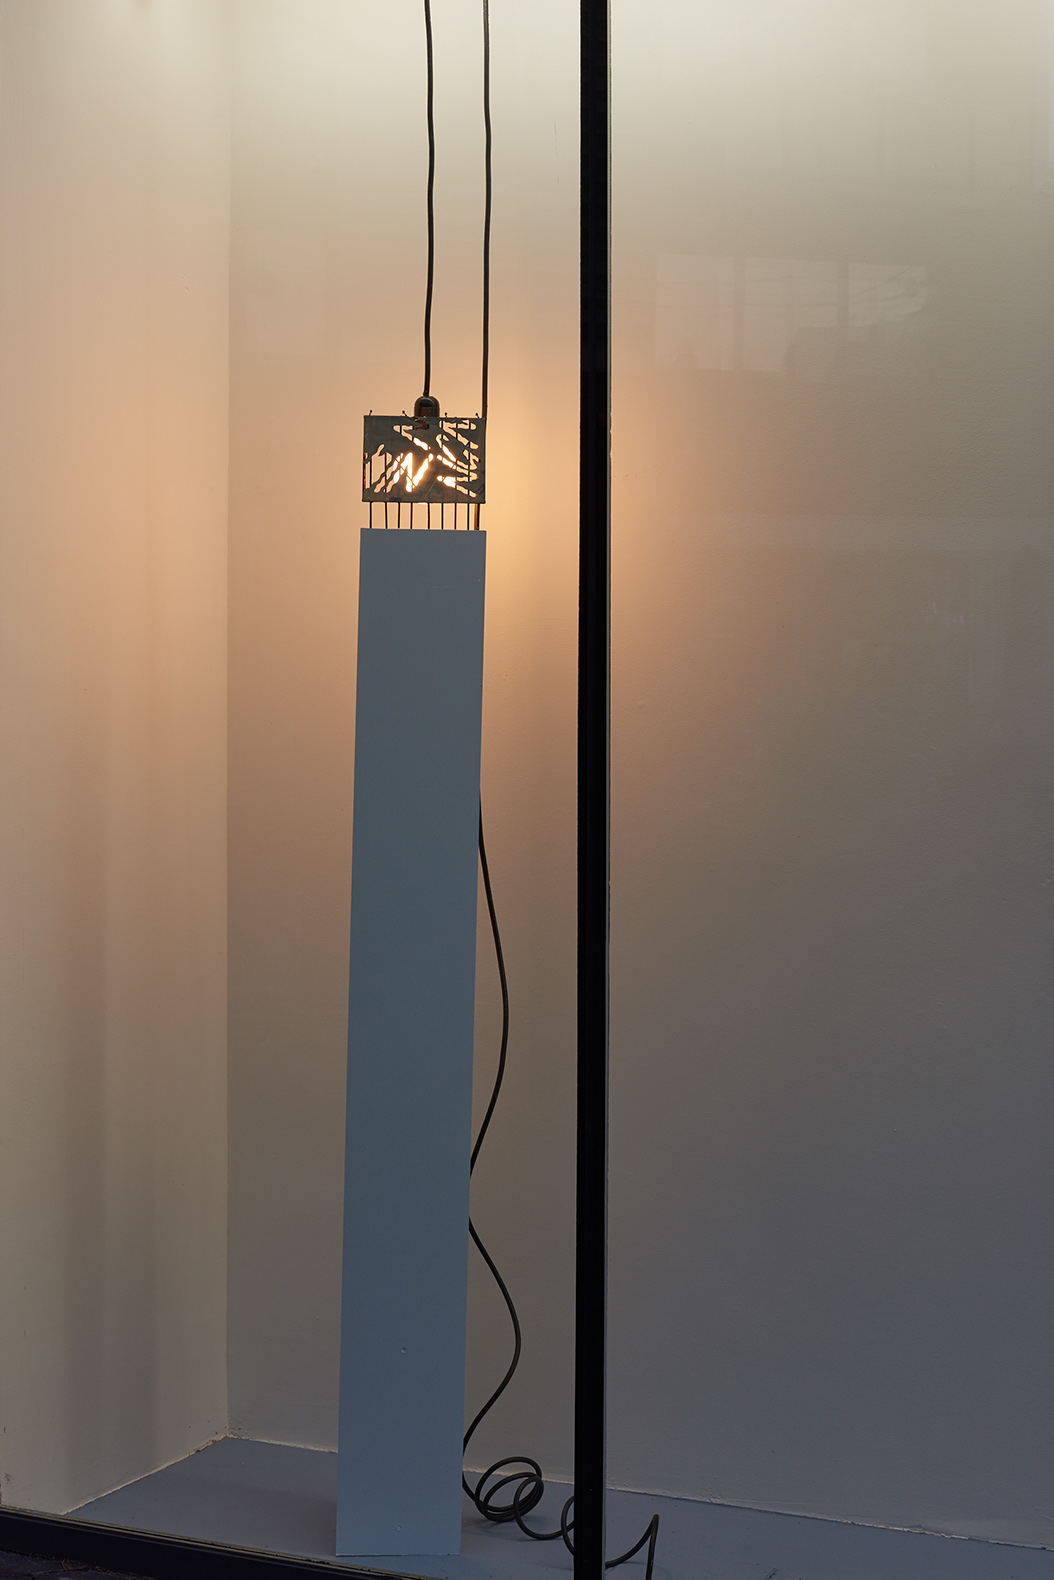 Charlie Godet Thomas, Night Song, Morning Song, 2019. Acrylic and pencil on paper, cut painted paper fragment, wood, plastic, light fitting. 164 x 20 x 18 cm.